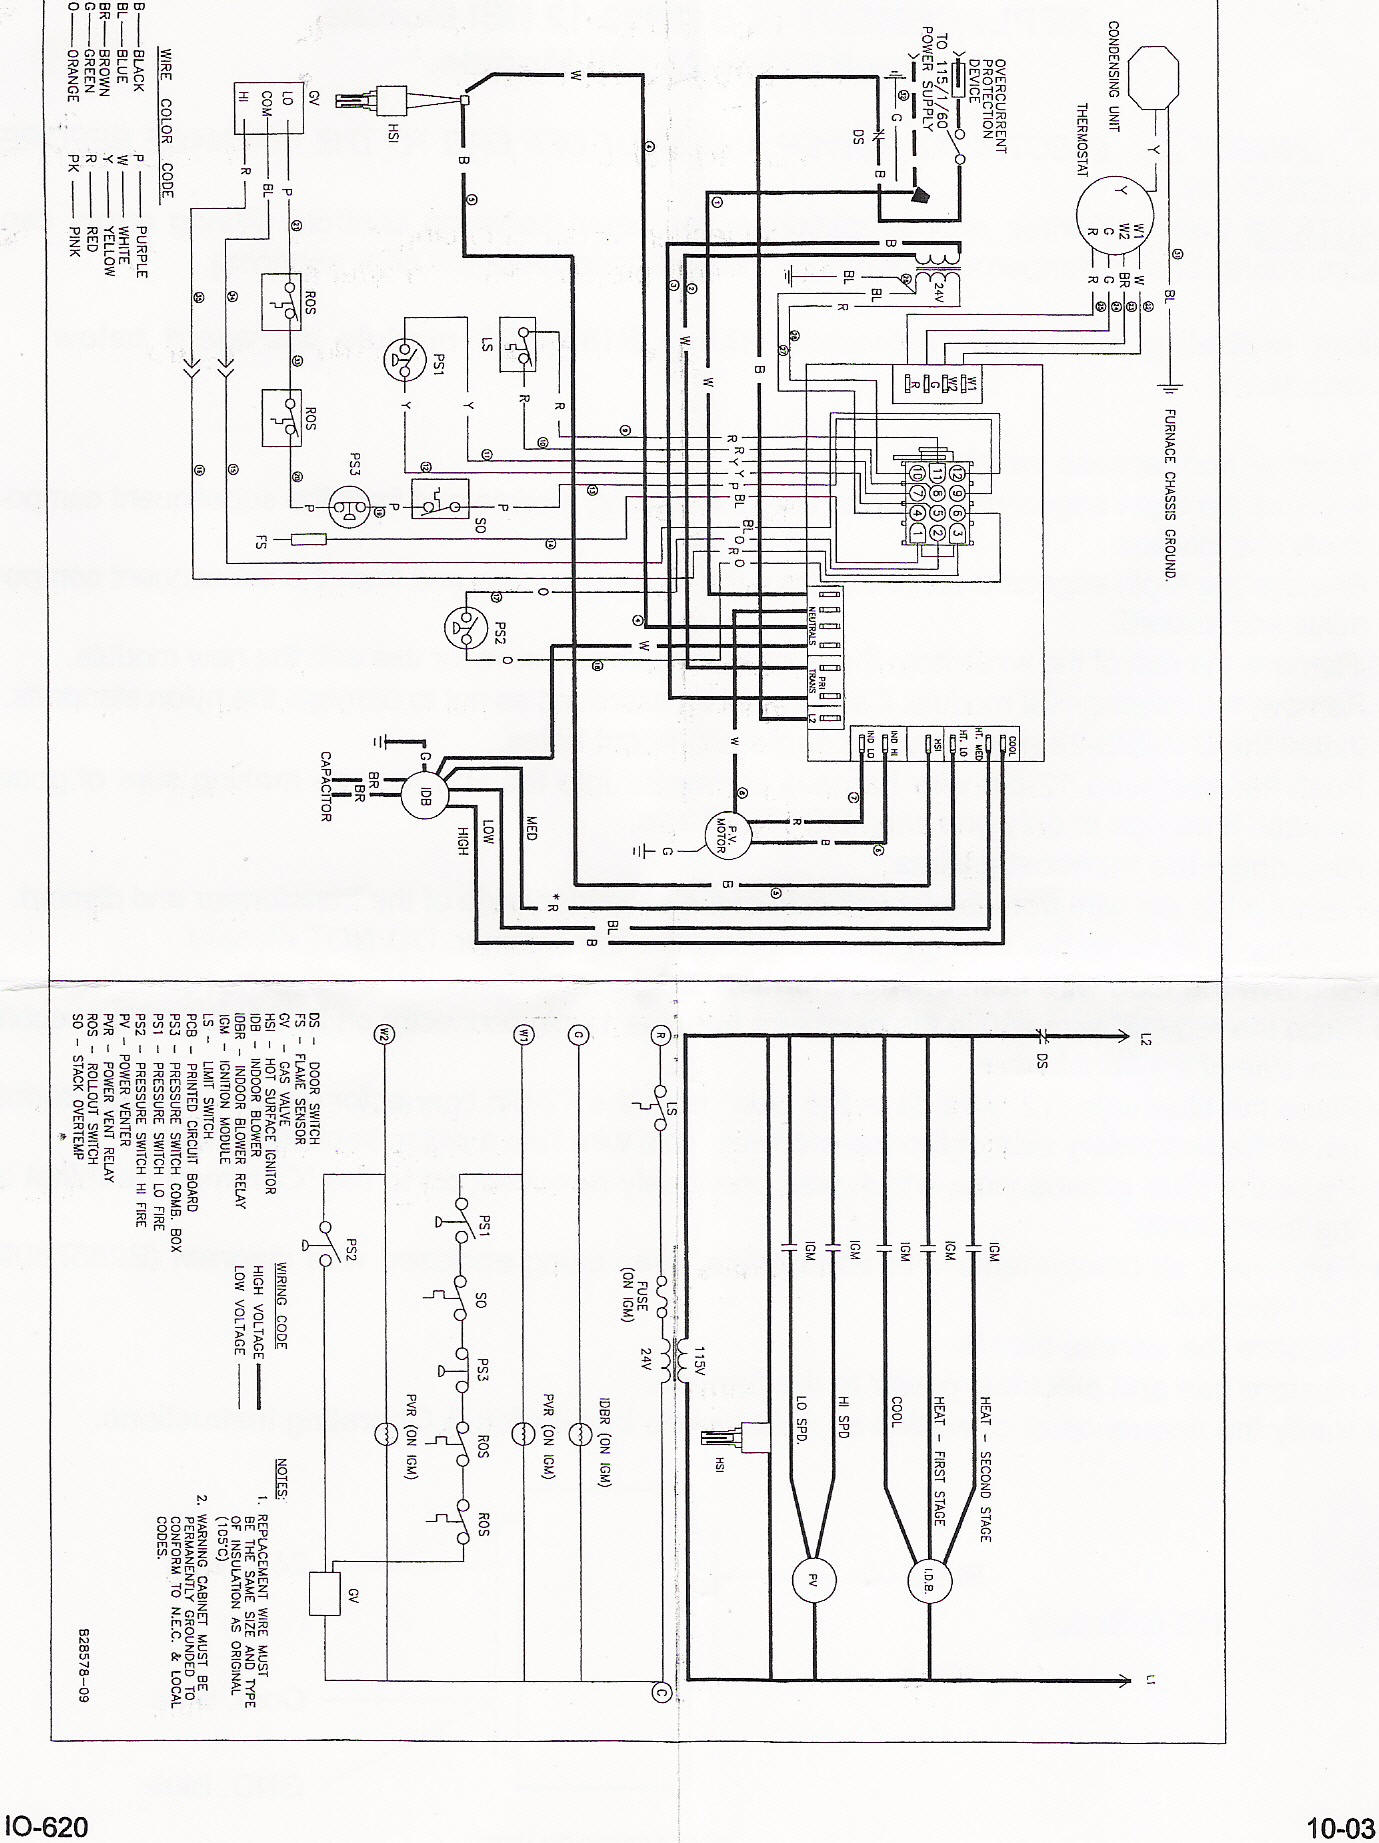 Colemen 7 Wire Thermostat Wiring Diagram Coleman Air Handler Evcon